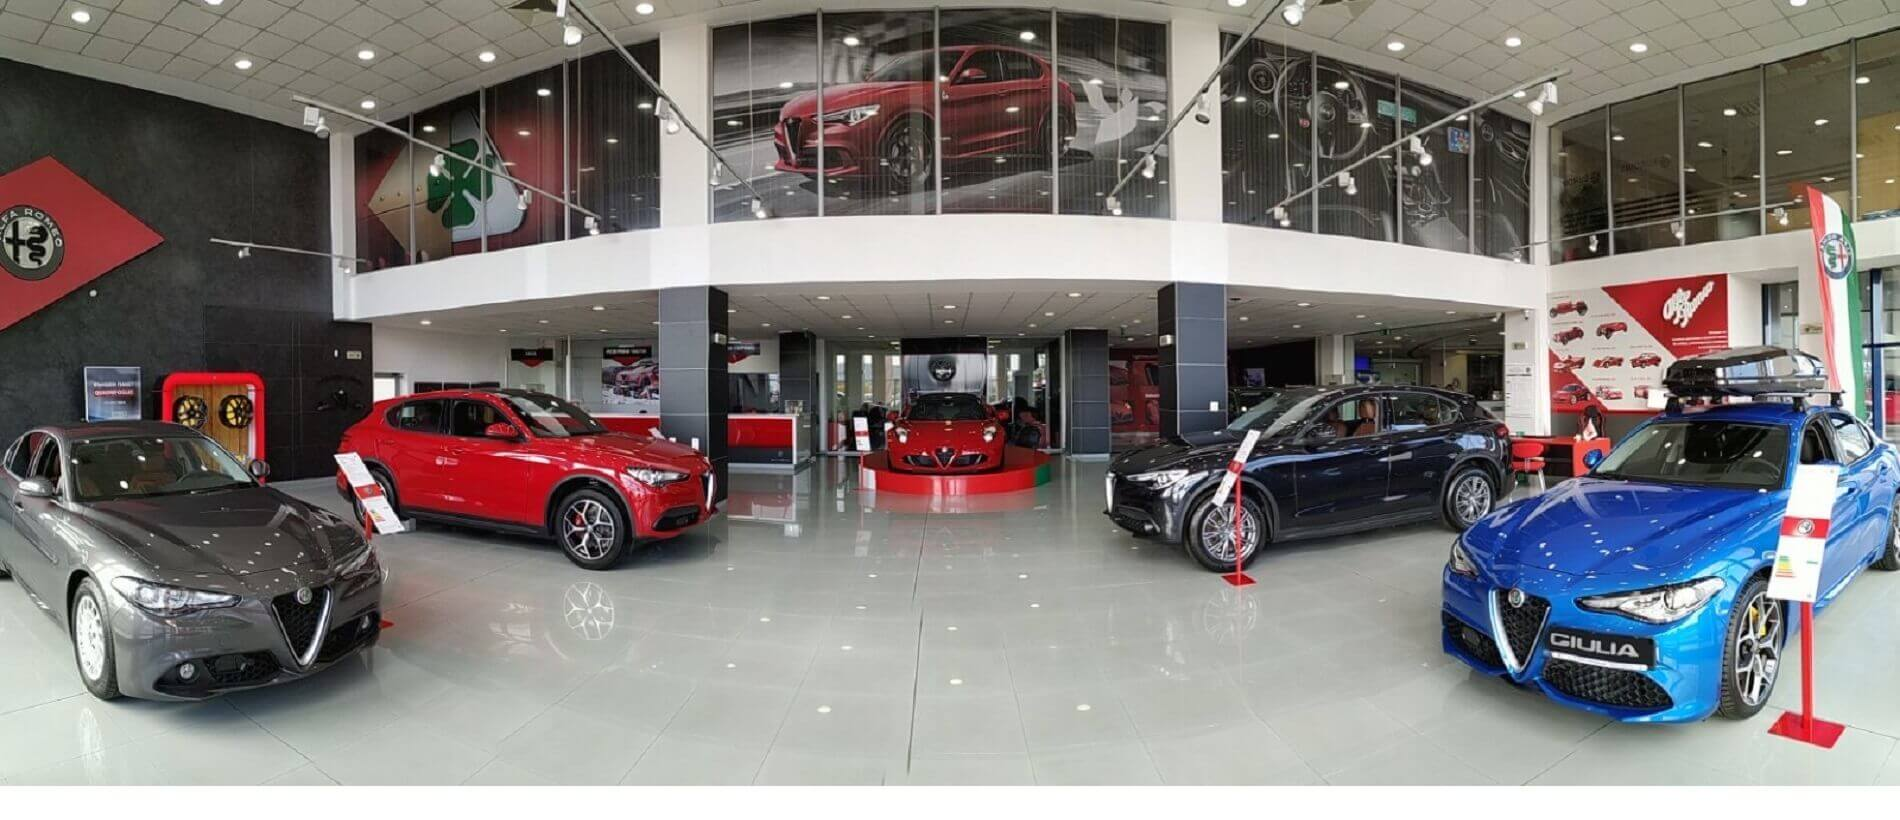 alfa romeo showroom sofia